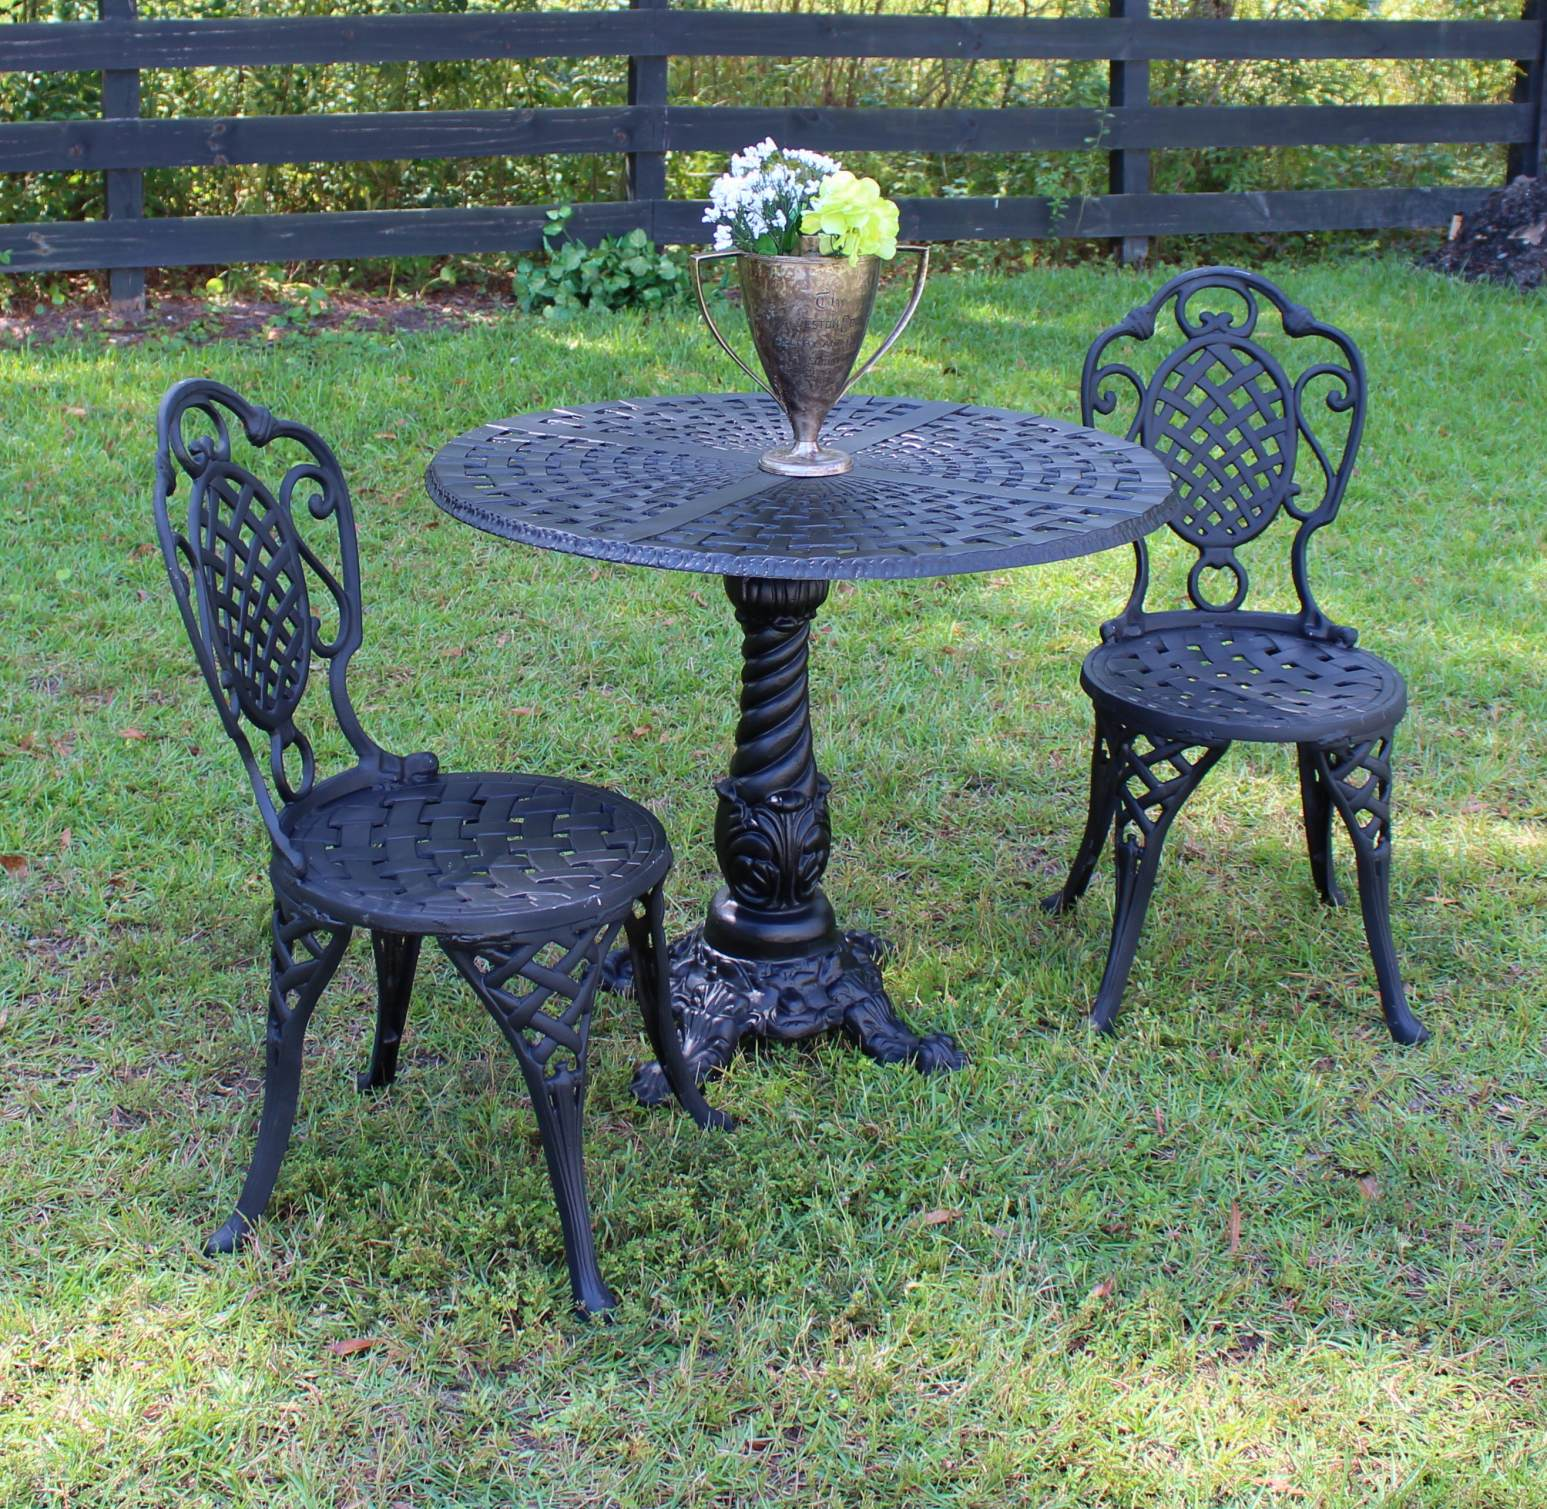 Bistro Set Of Two Chairs And Table For Garden Porch Or Restaurant Cafe